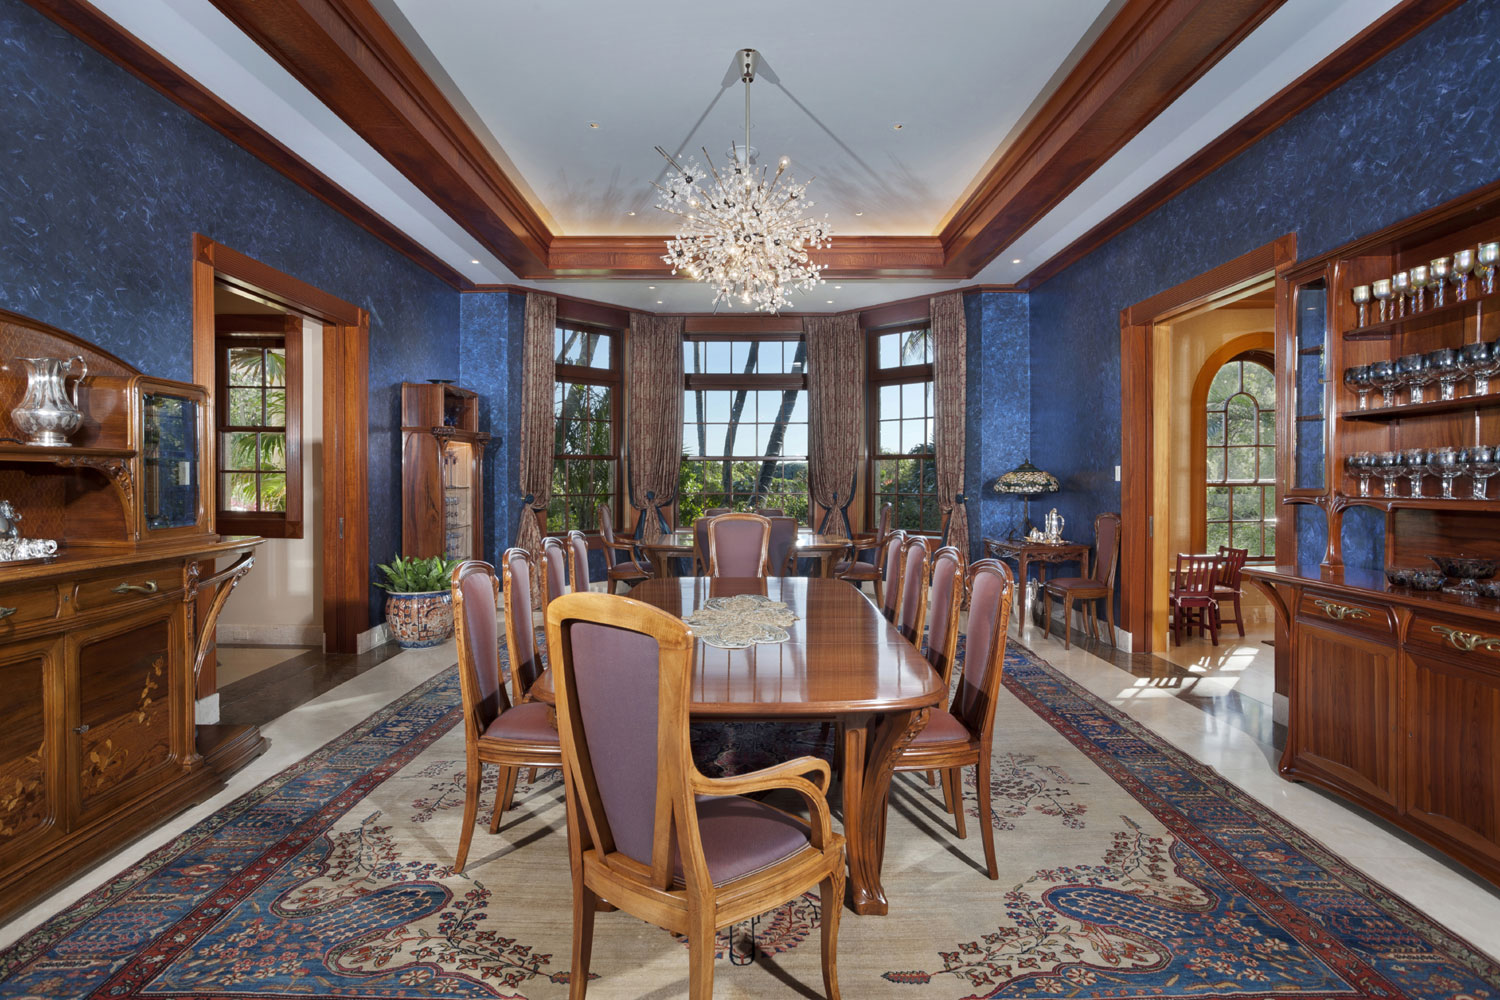 The centerpiece of Gemini estate's incredible lighting is the dining room chandelier; the same fixture as those found in The Metropolitan Opera House.